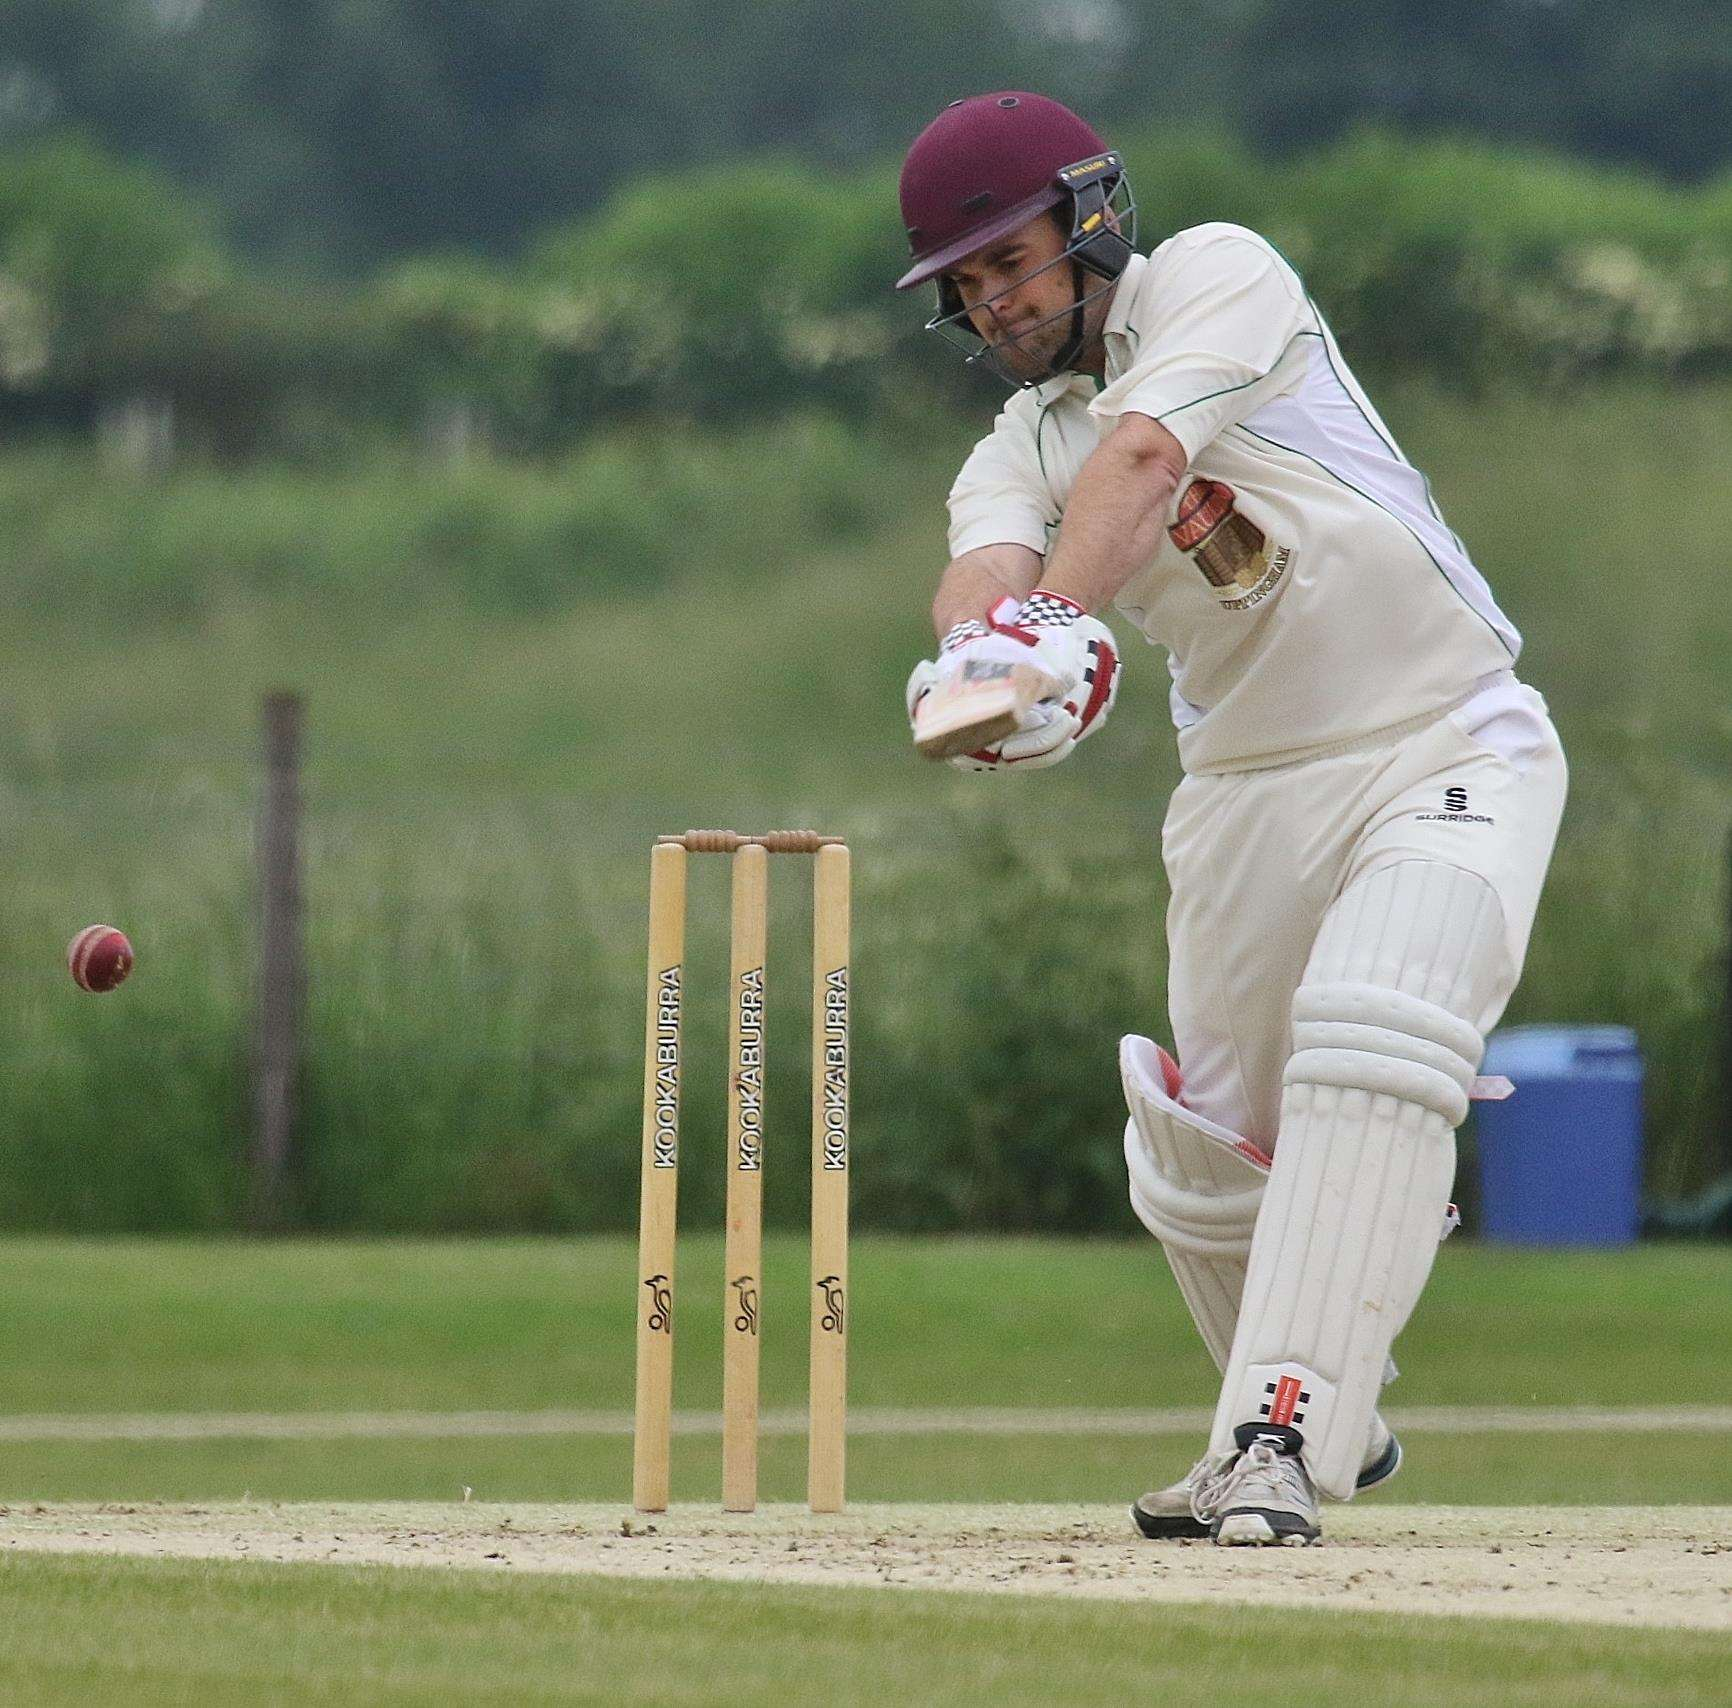 Alex Ashwin hit 22 for Uppingham on Monday night. (2714495)